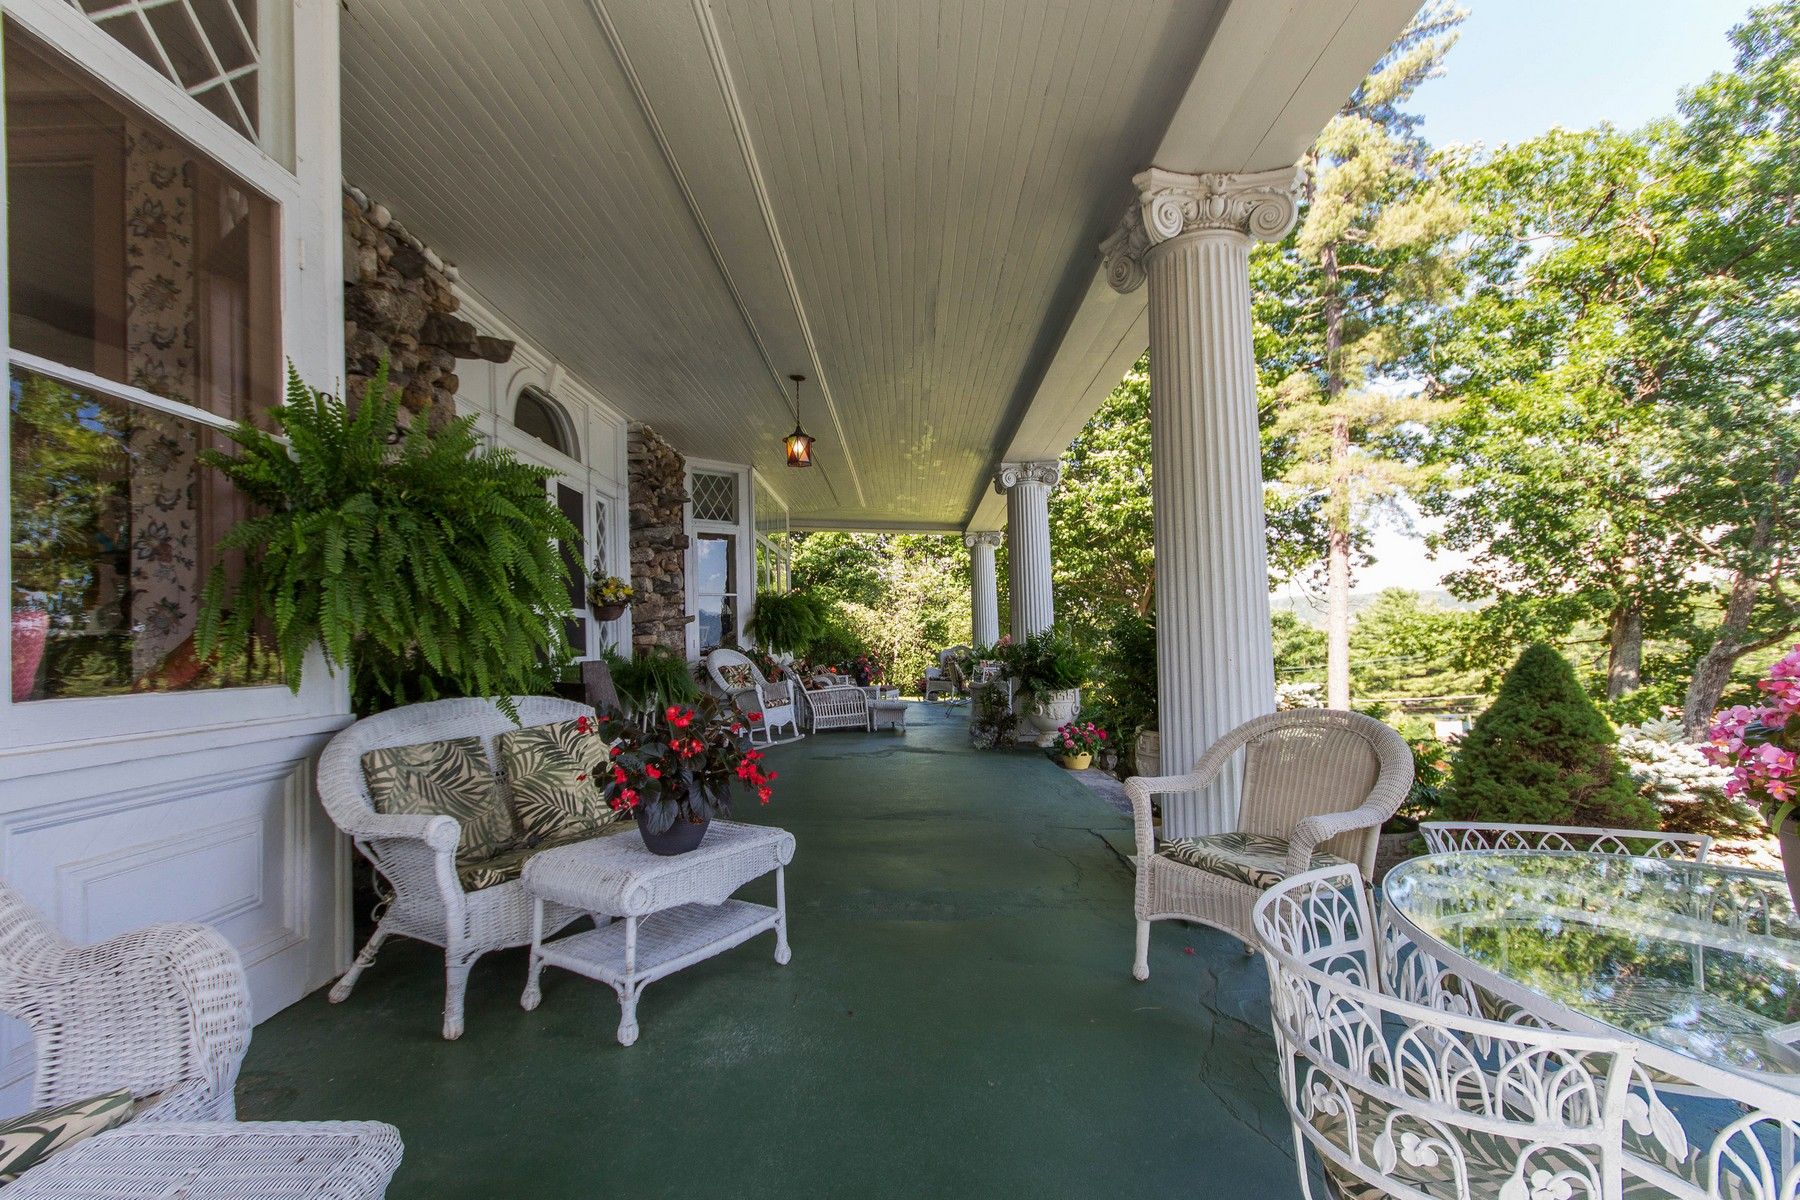 Additional photo for property listing at Ruah House on Lake George 9221  Lakeshore Dr 海牙, 纽约州 12836 美国